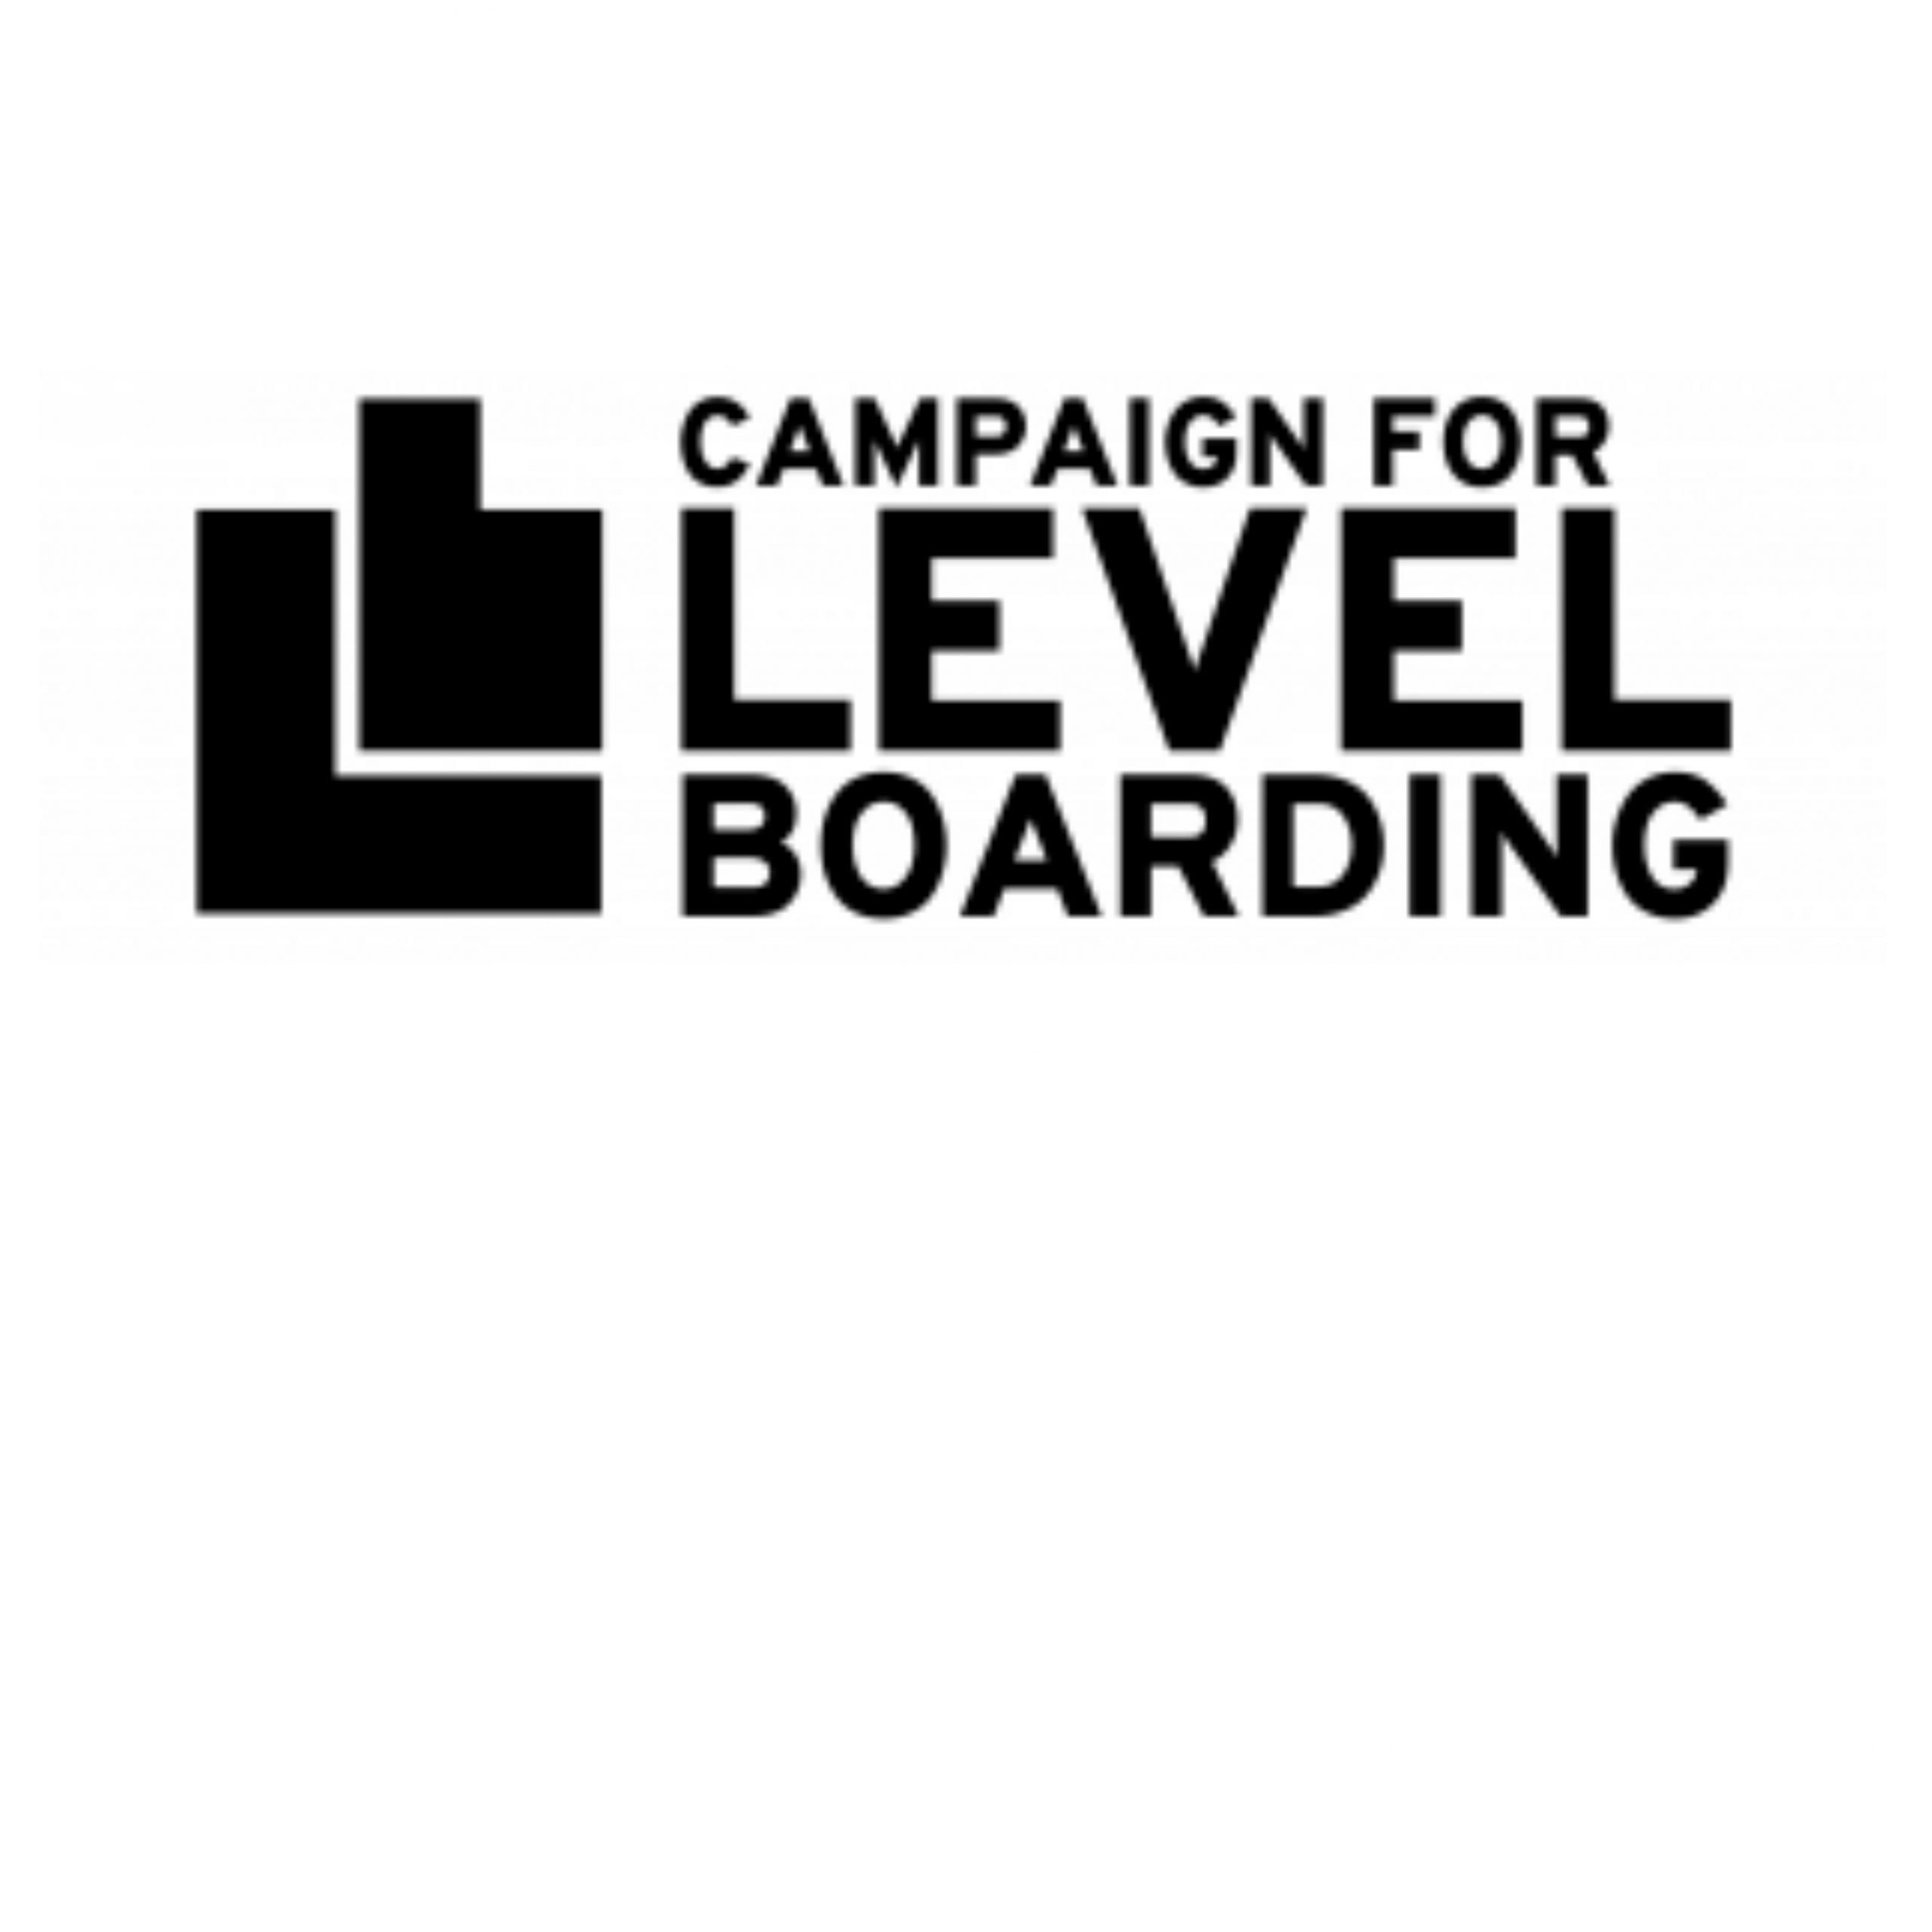 Campaign for Level Boarding: Building a Safe, Efficient, and Modern Railway